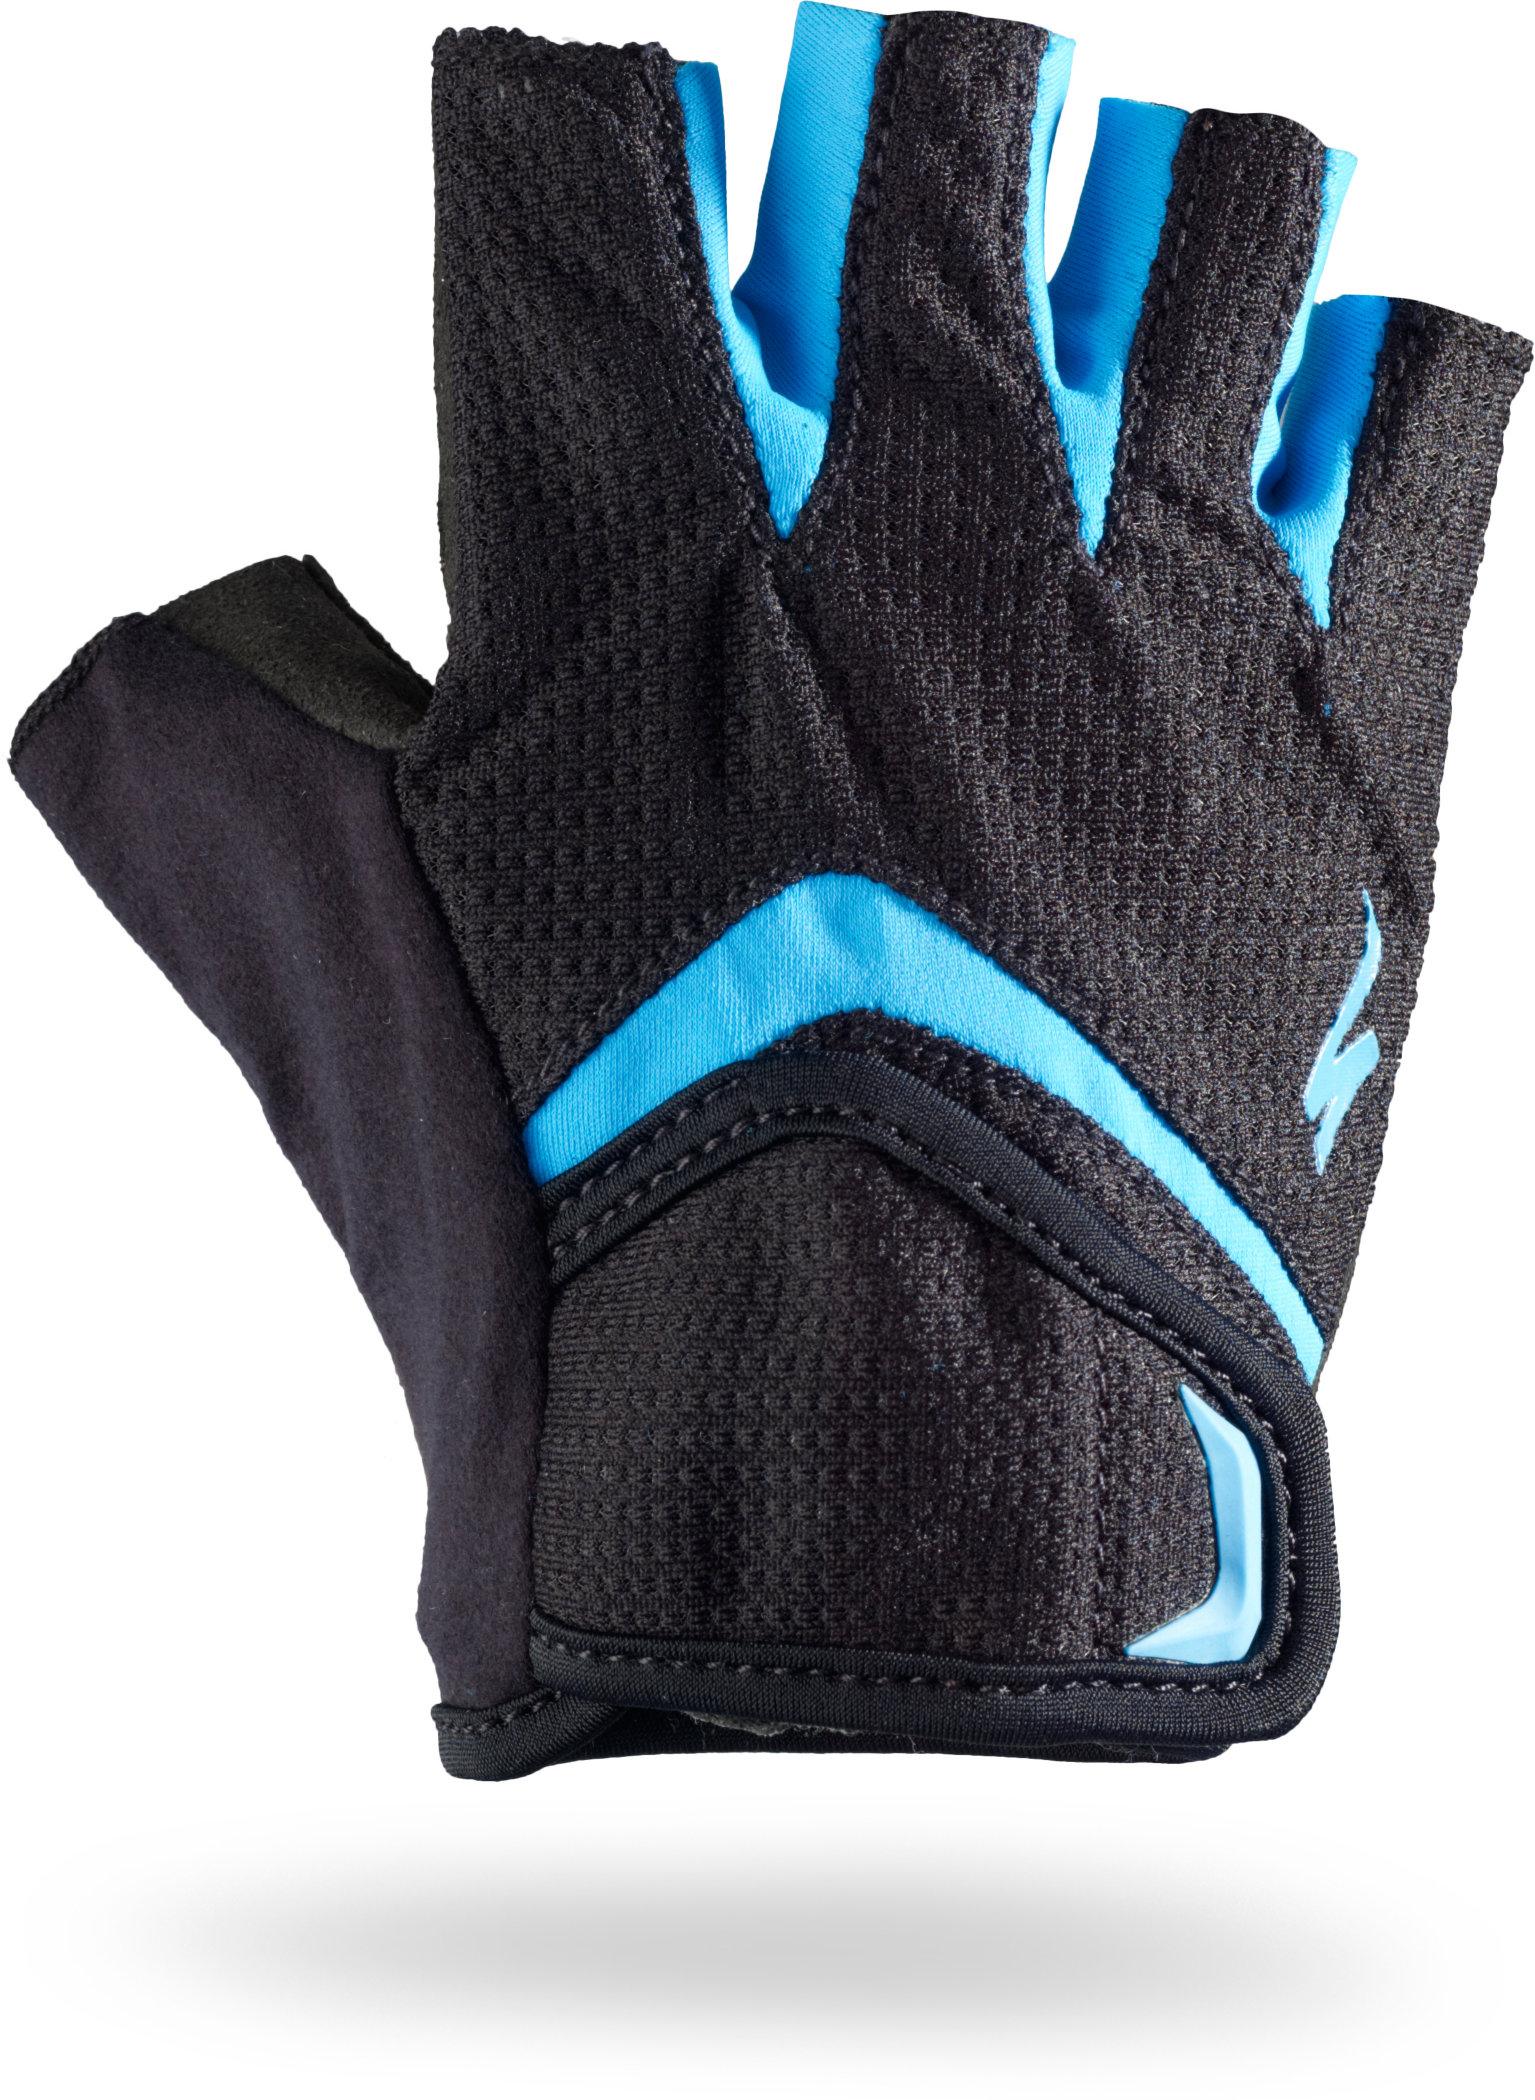 SPECIALIZED BG KIDS GLOVE SF BLK/BLU L - Pulsschlag Bike+Sport